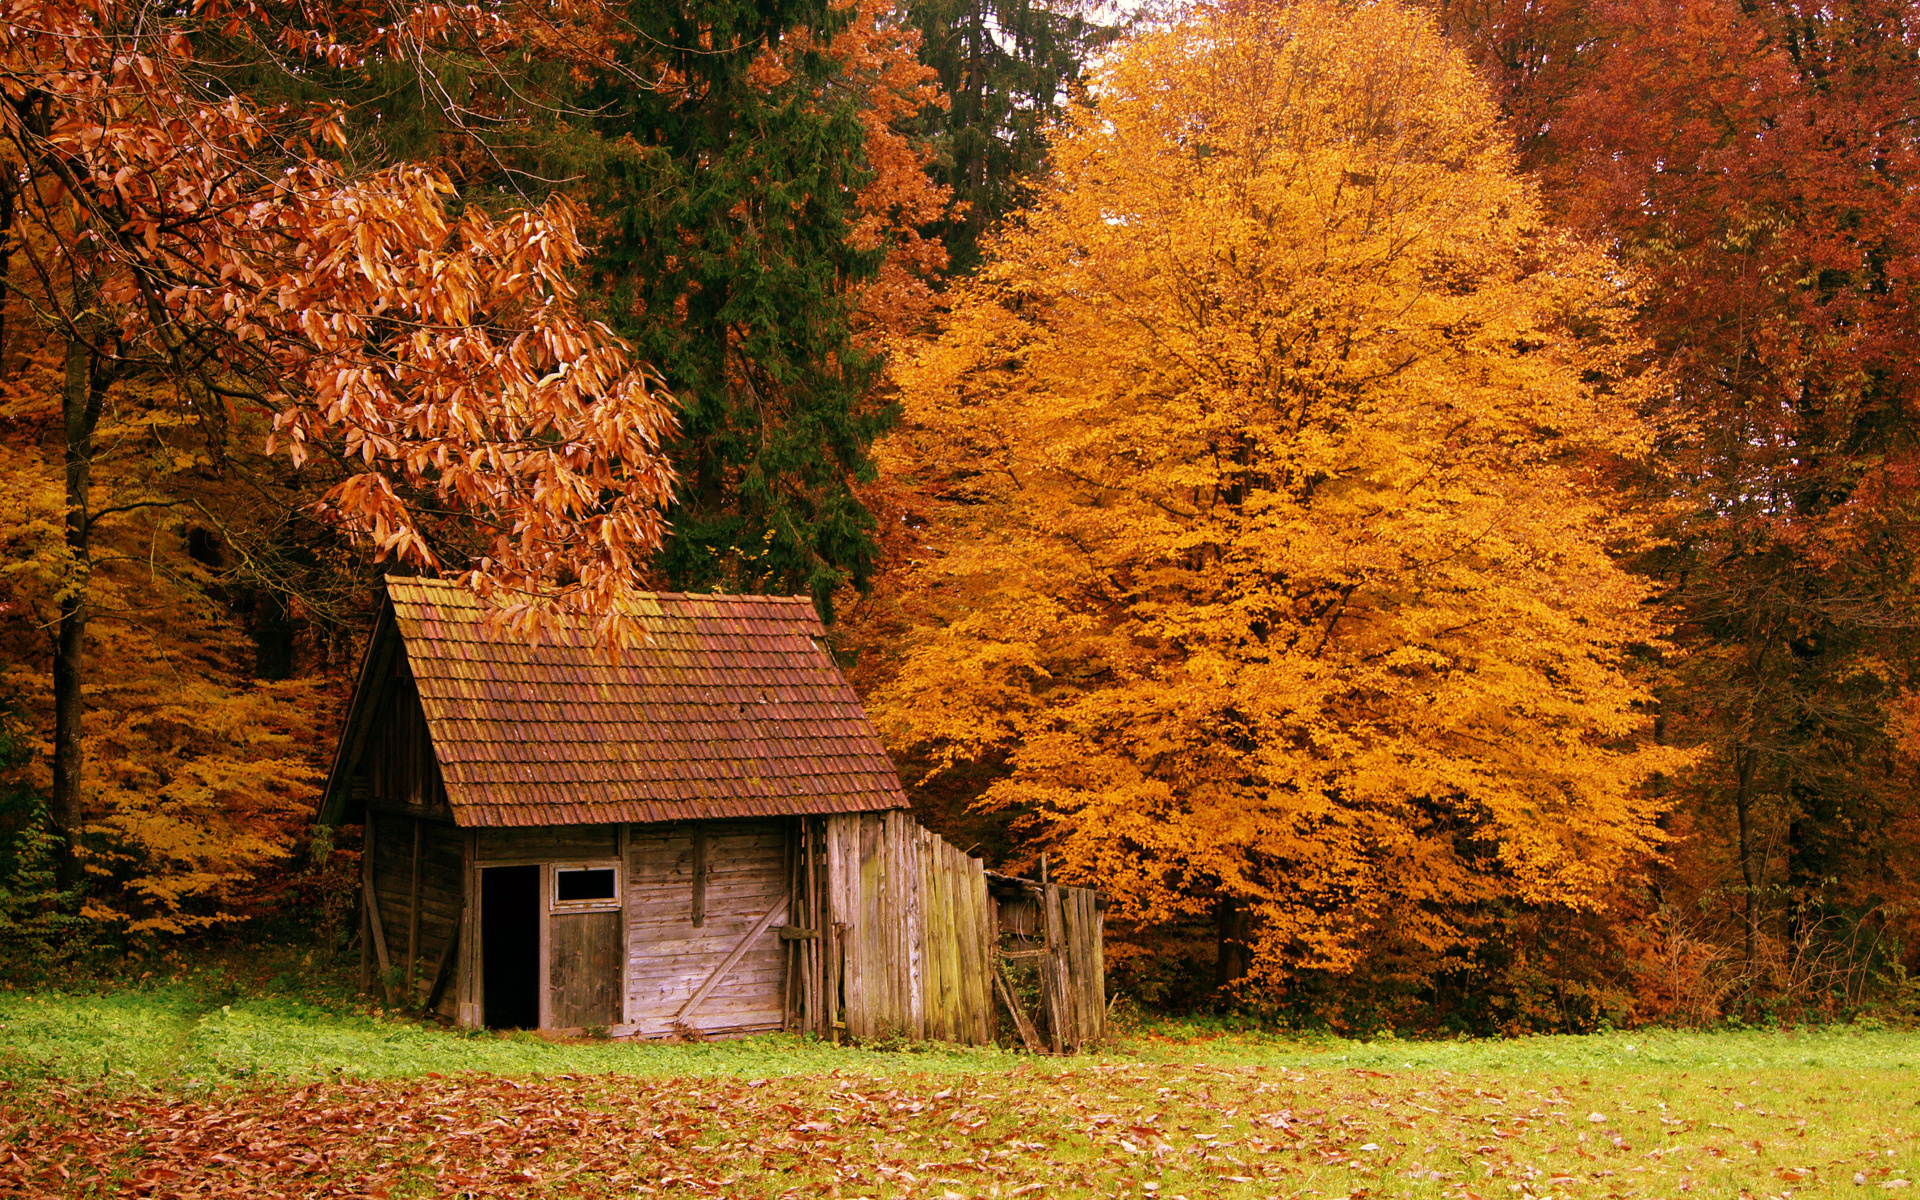 33956 download wallpaper Landscape, Houses, Autumn screensavers and pictures for free